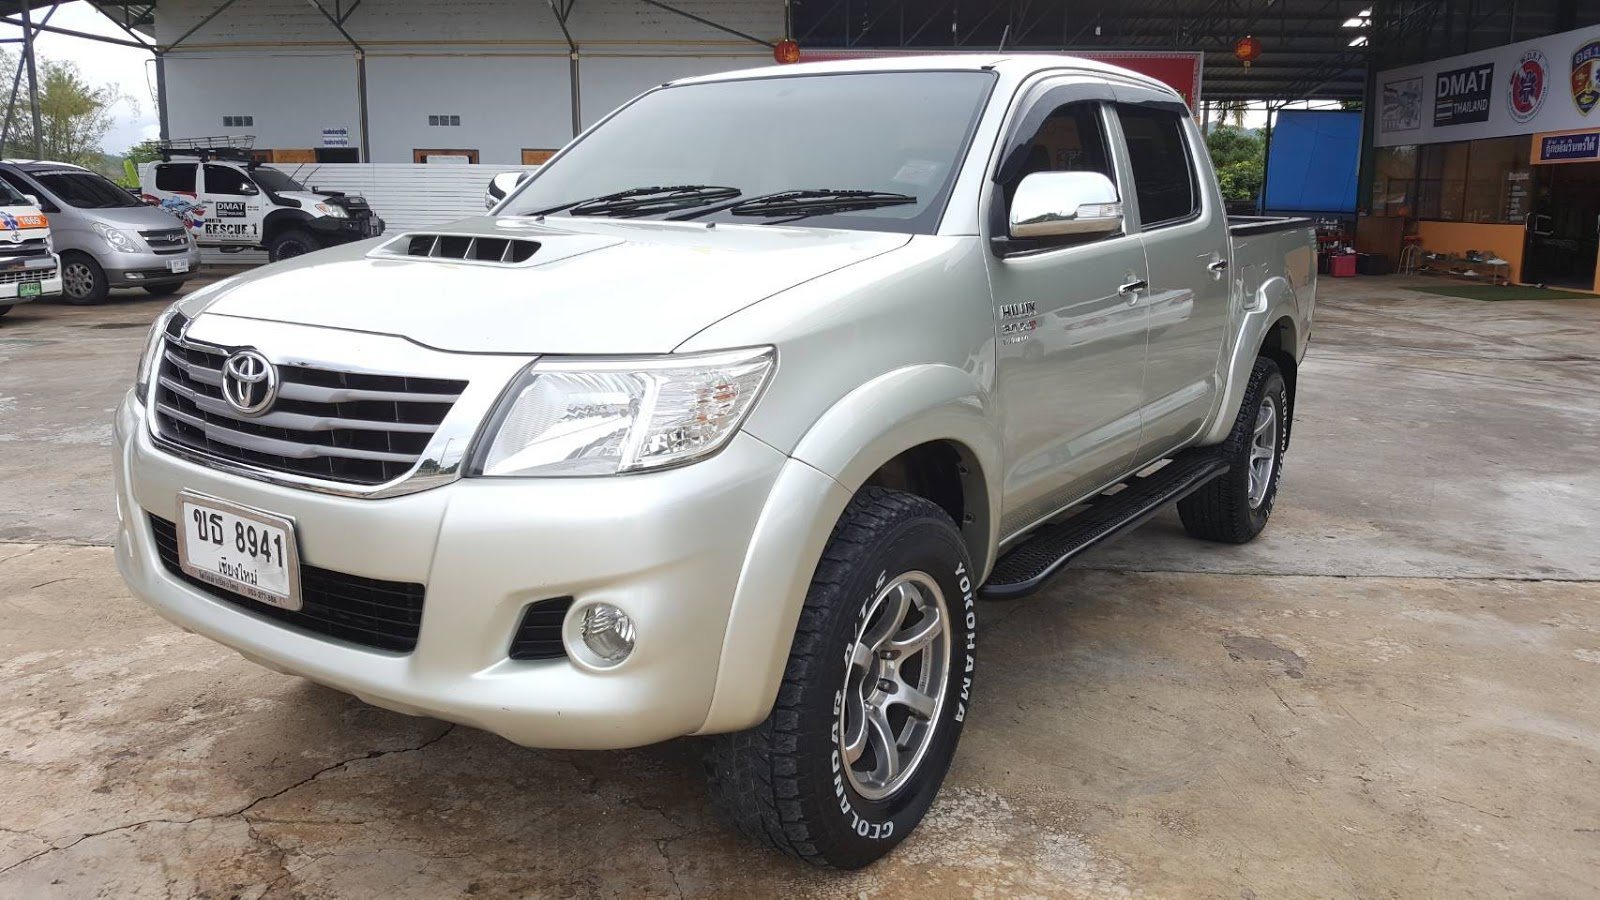 2013 Toyota Hilux Vigo Diesel Double Cab 4wd For Kenya To